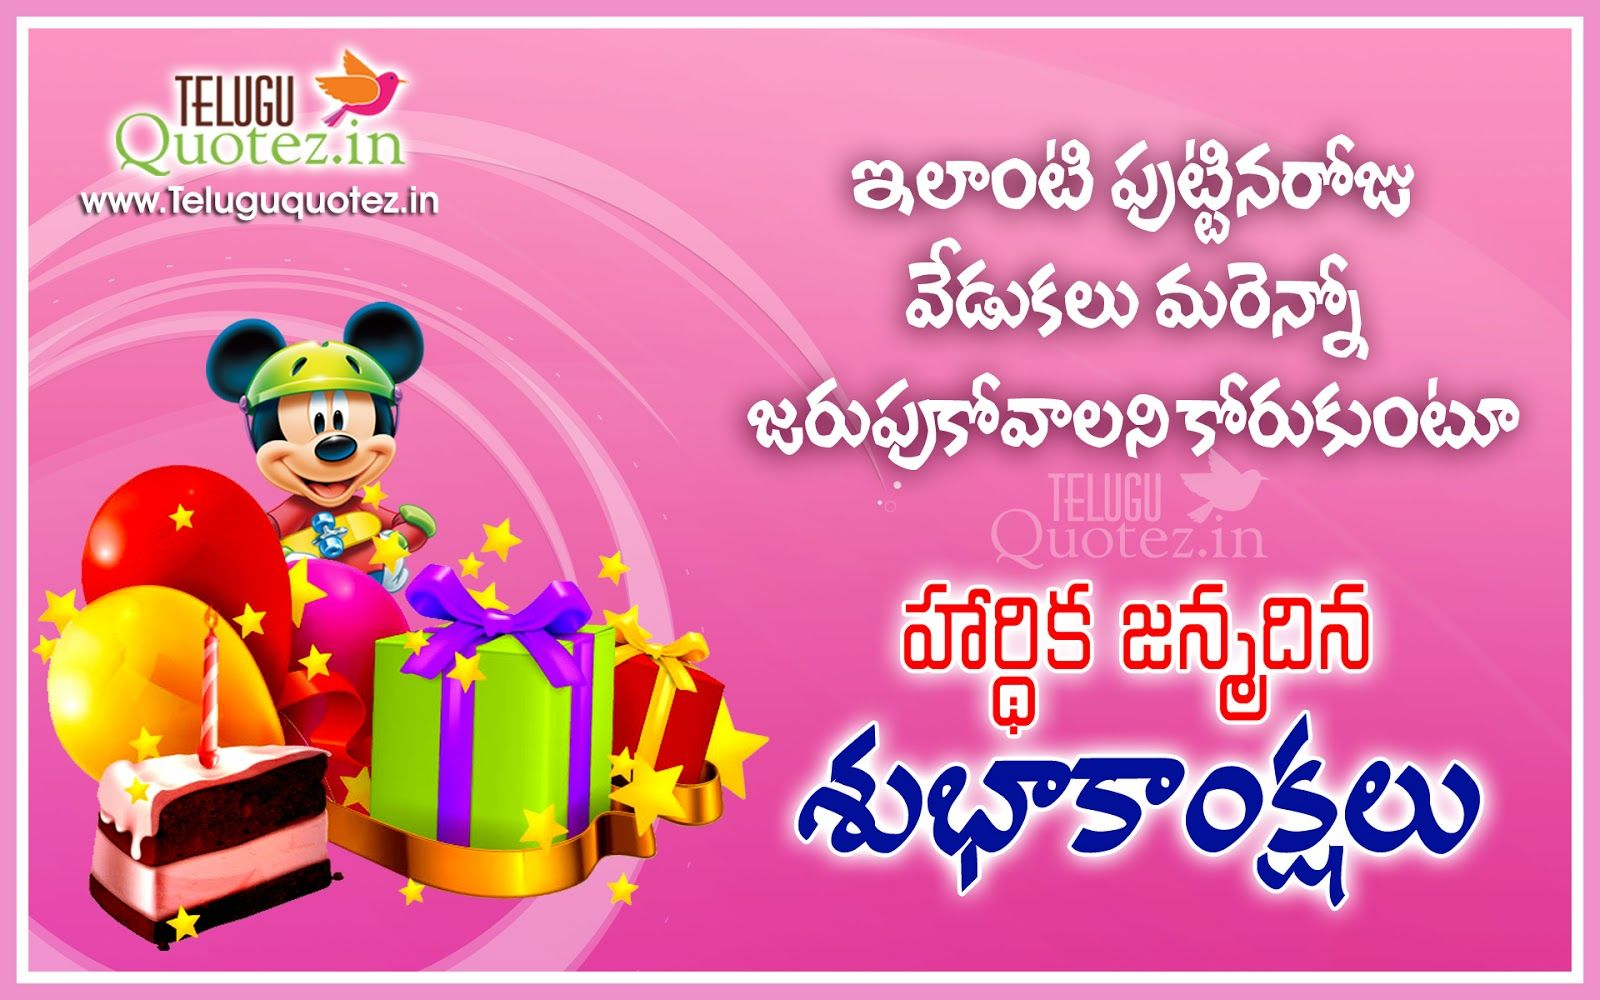 happy birthday wishes in telugu language Teluguquotez.in